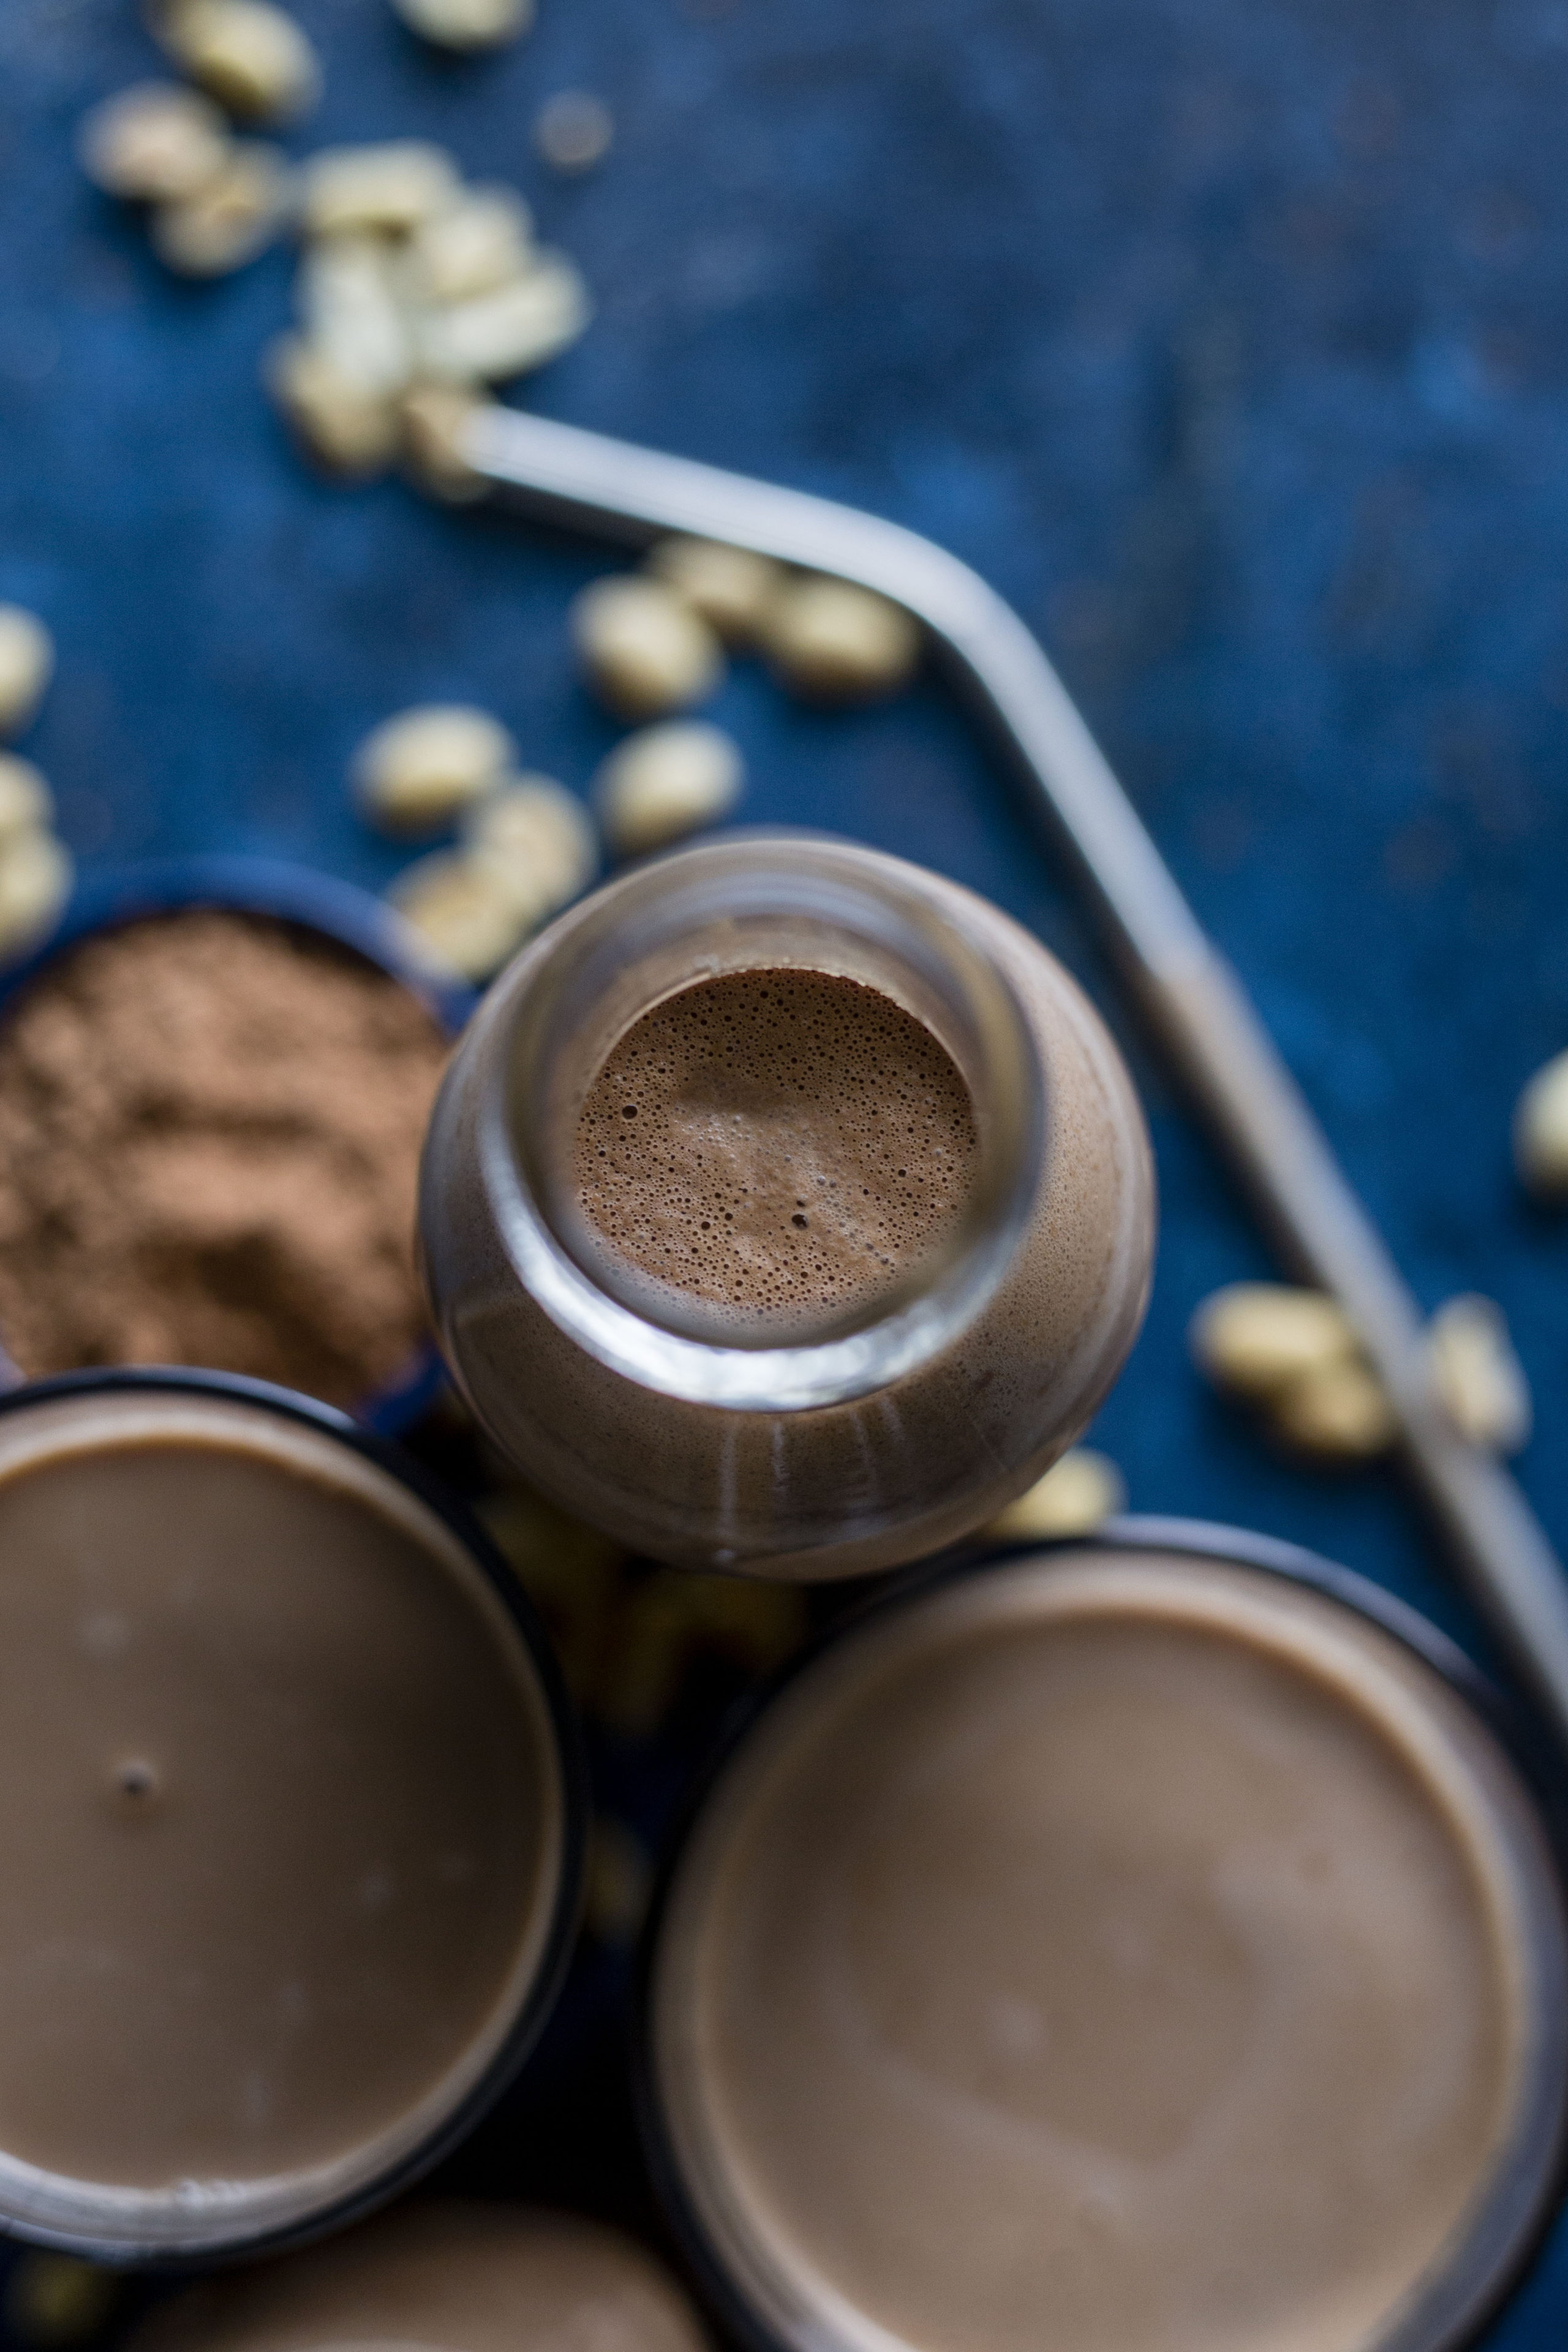 Chocolate Peanut Milk | A tasty dairy free alternative made with peanuts and cacao!